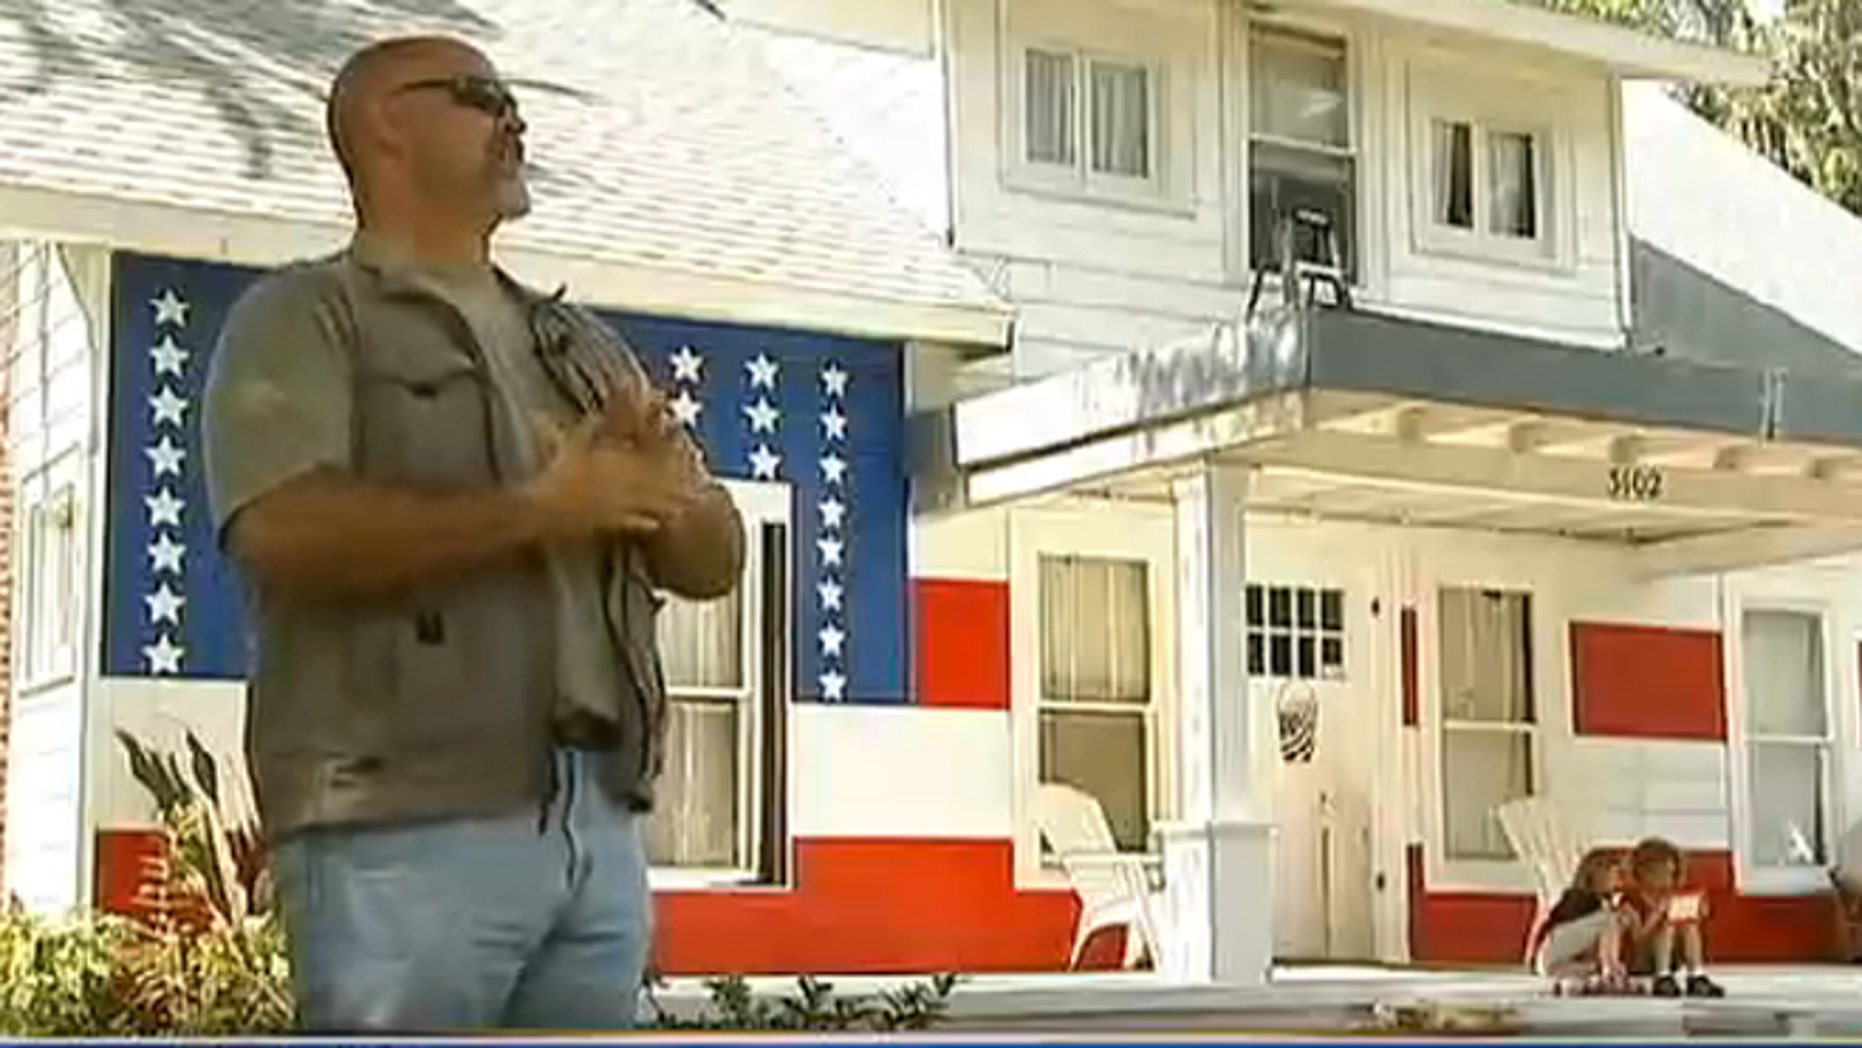 Brent Greer said he painted his Florida home red, white and blue to protest unfair fines.